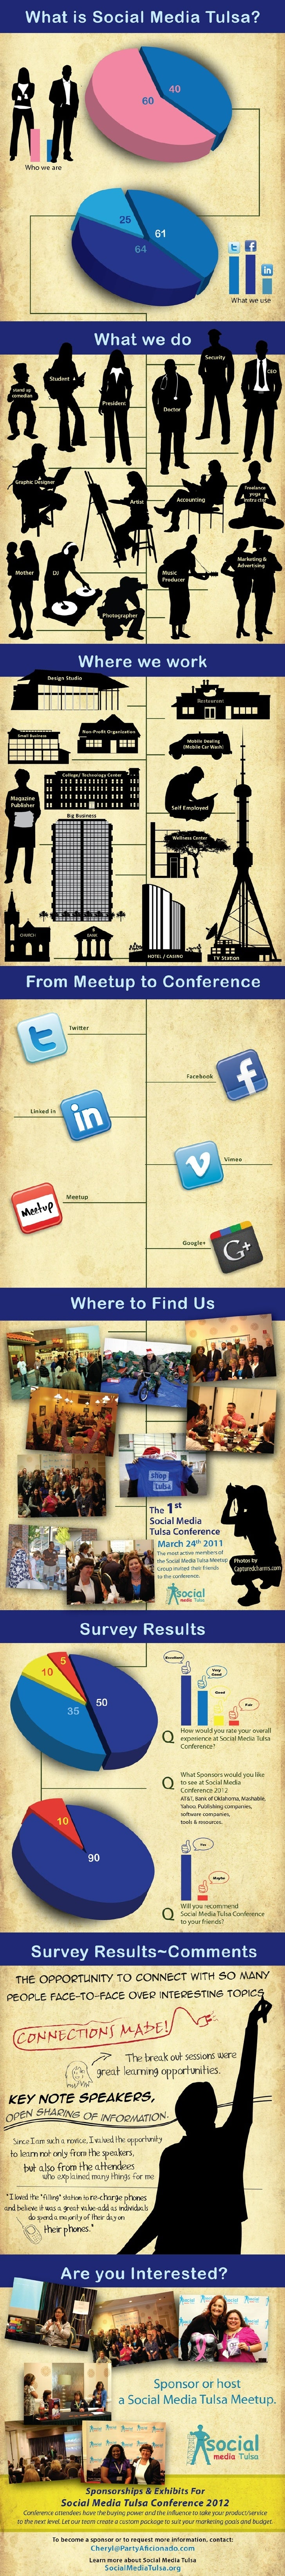 What is Social Media Tulsa [Infographic]